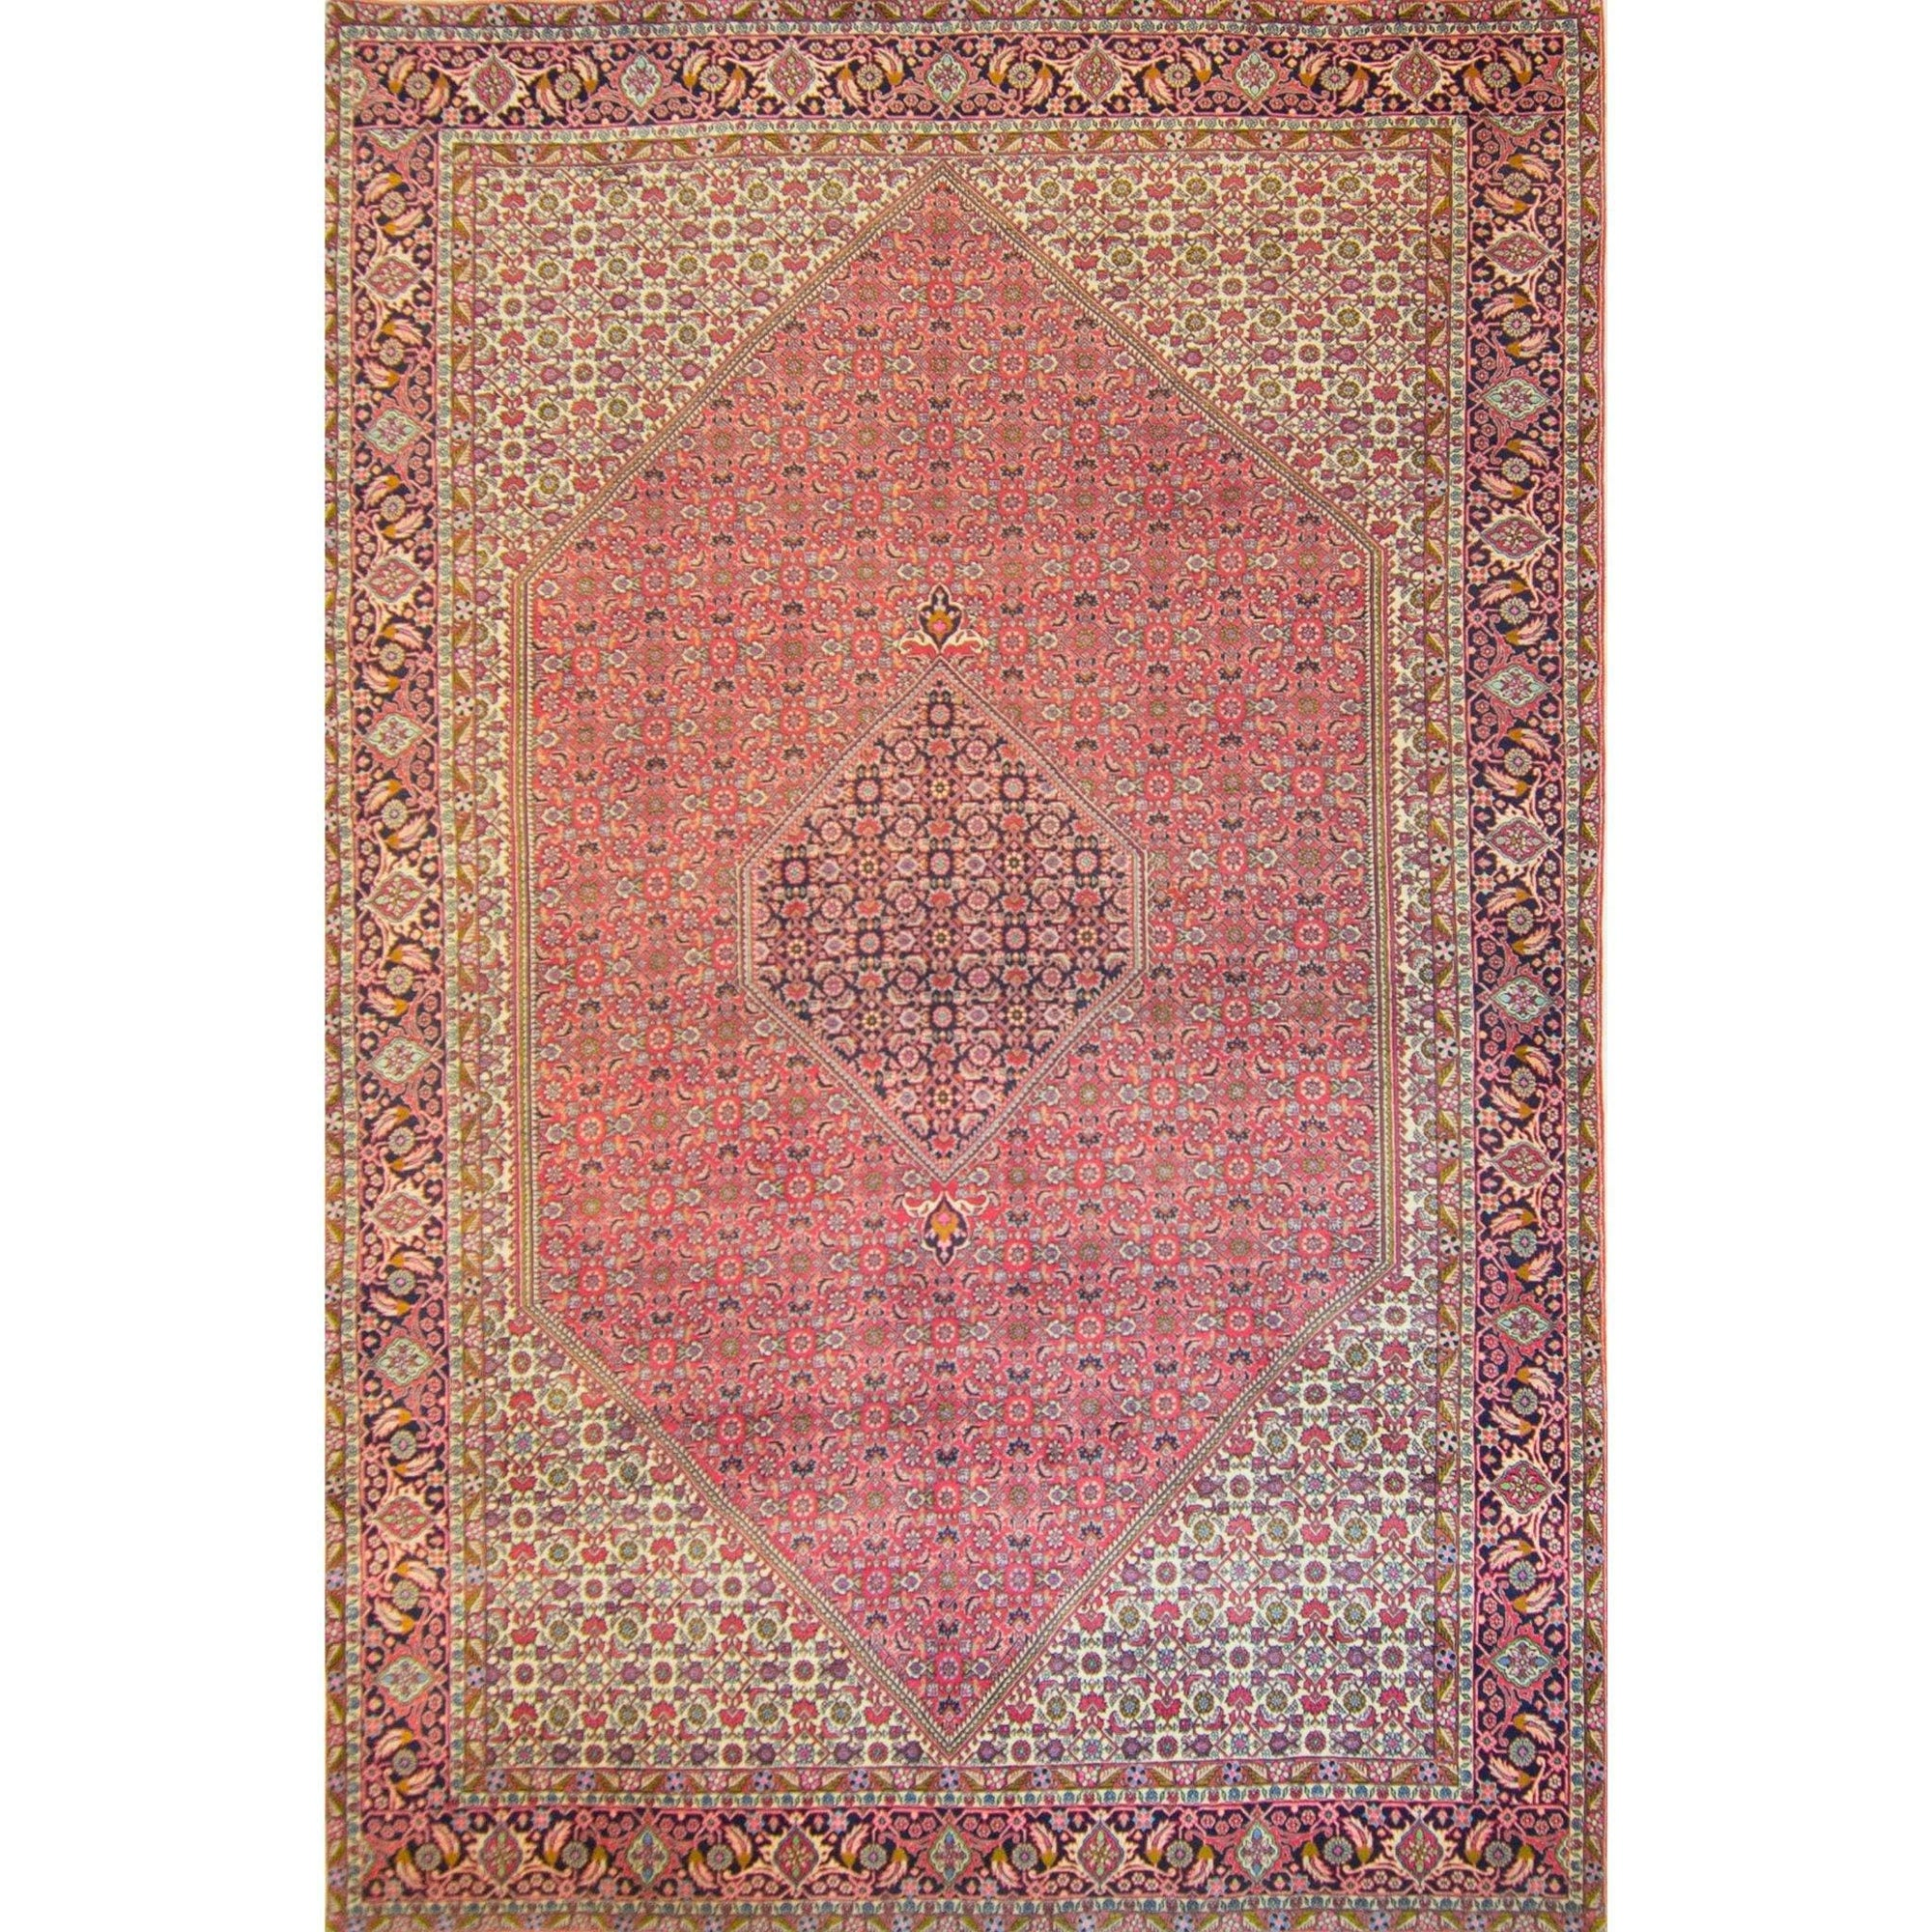 Super Fine Hand-knotted Persian Wool Bijar Rug 245cm x 360cm Persian-Rug | House-of-Haghi | NewMarket | Auckland | NZ | Handmade Persian Rugs | Hand Knotted Persian Rugs